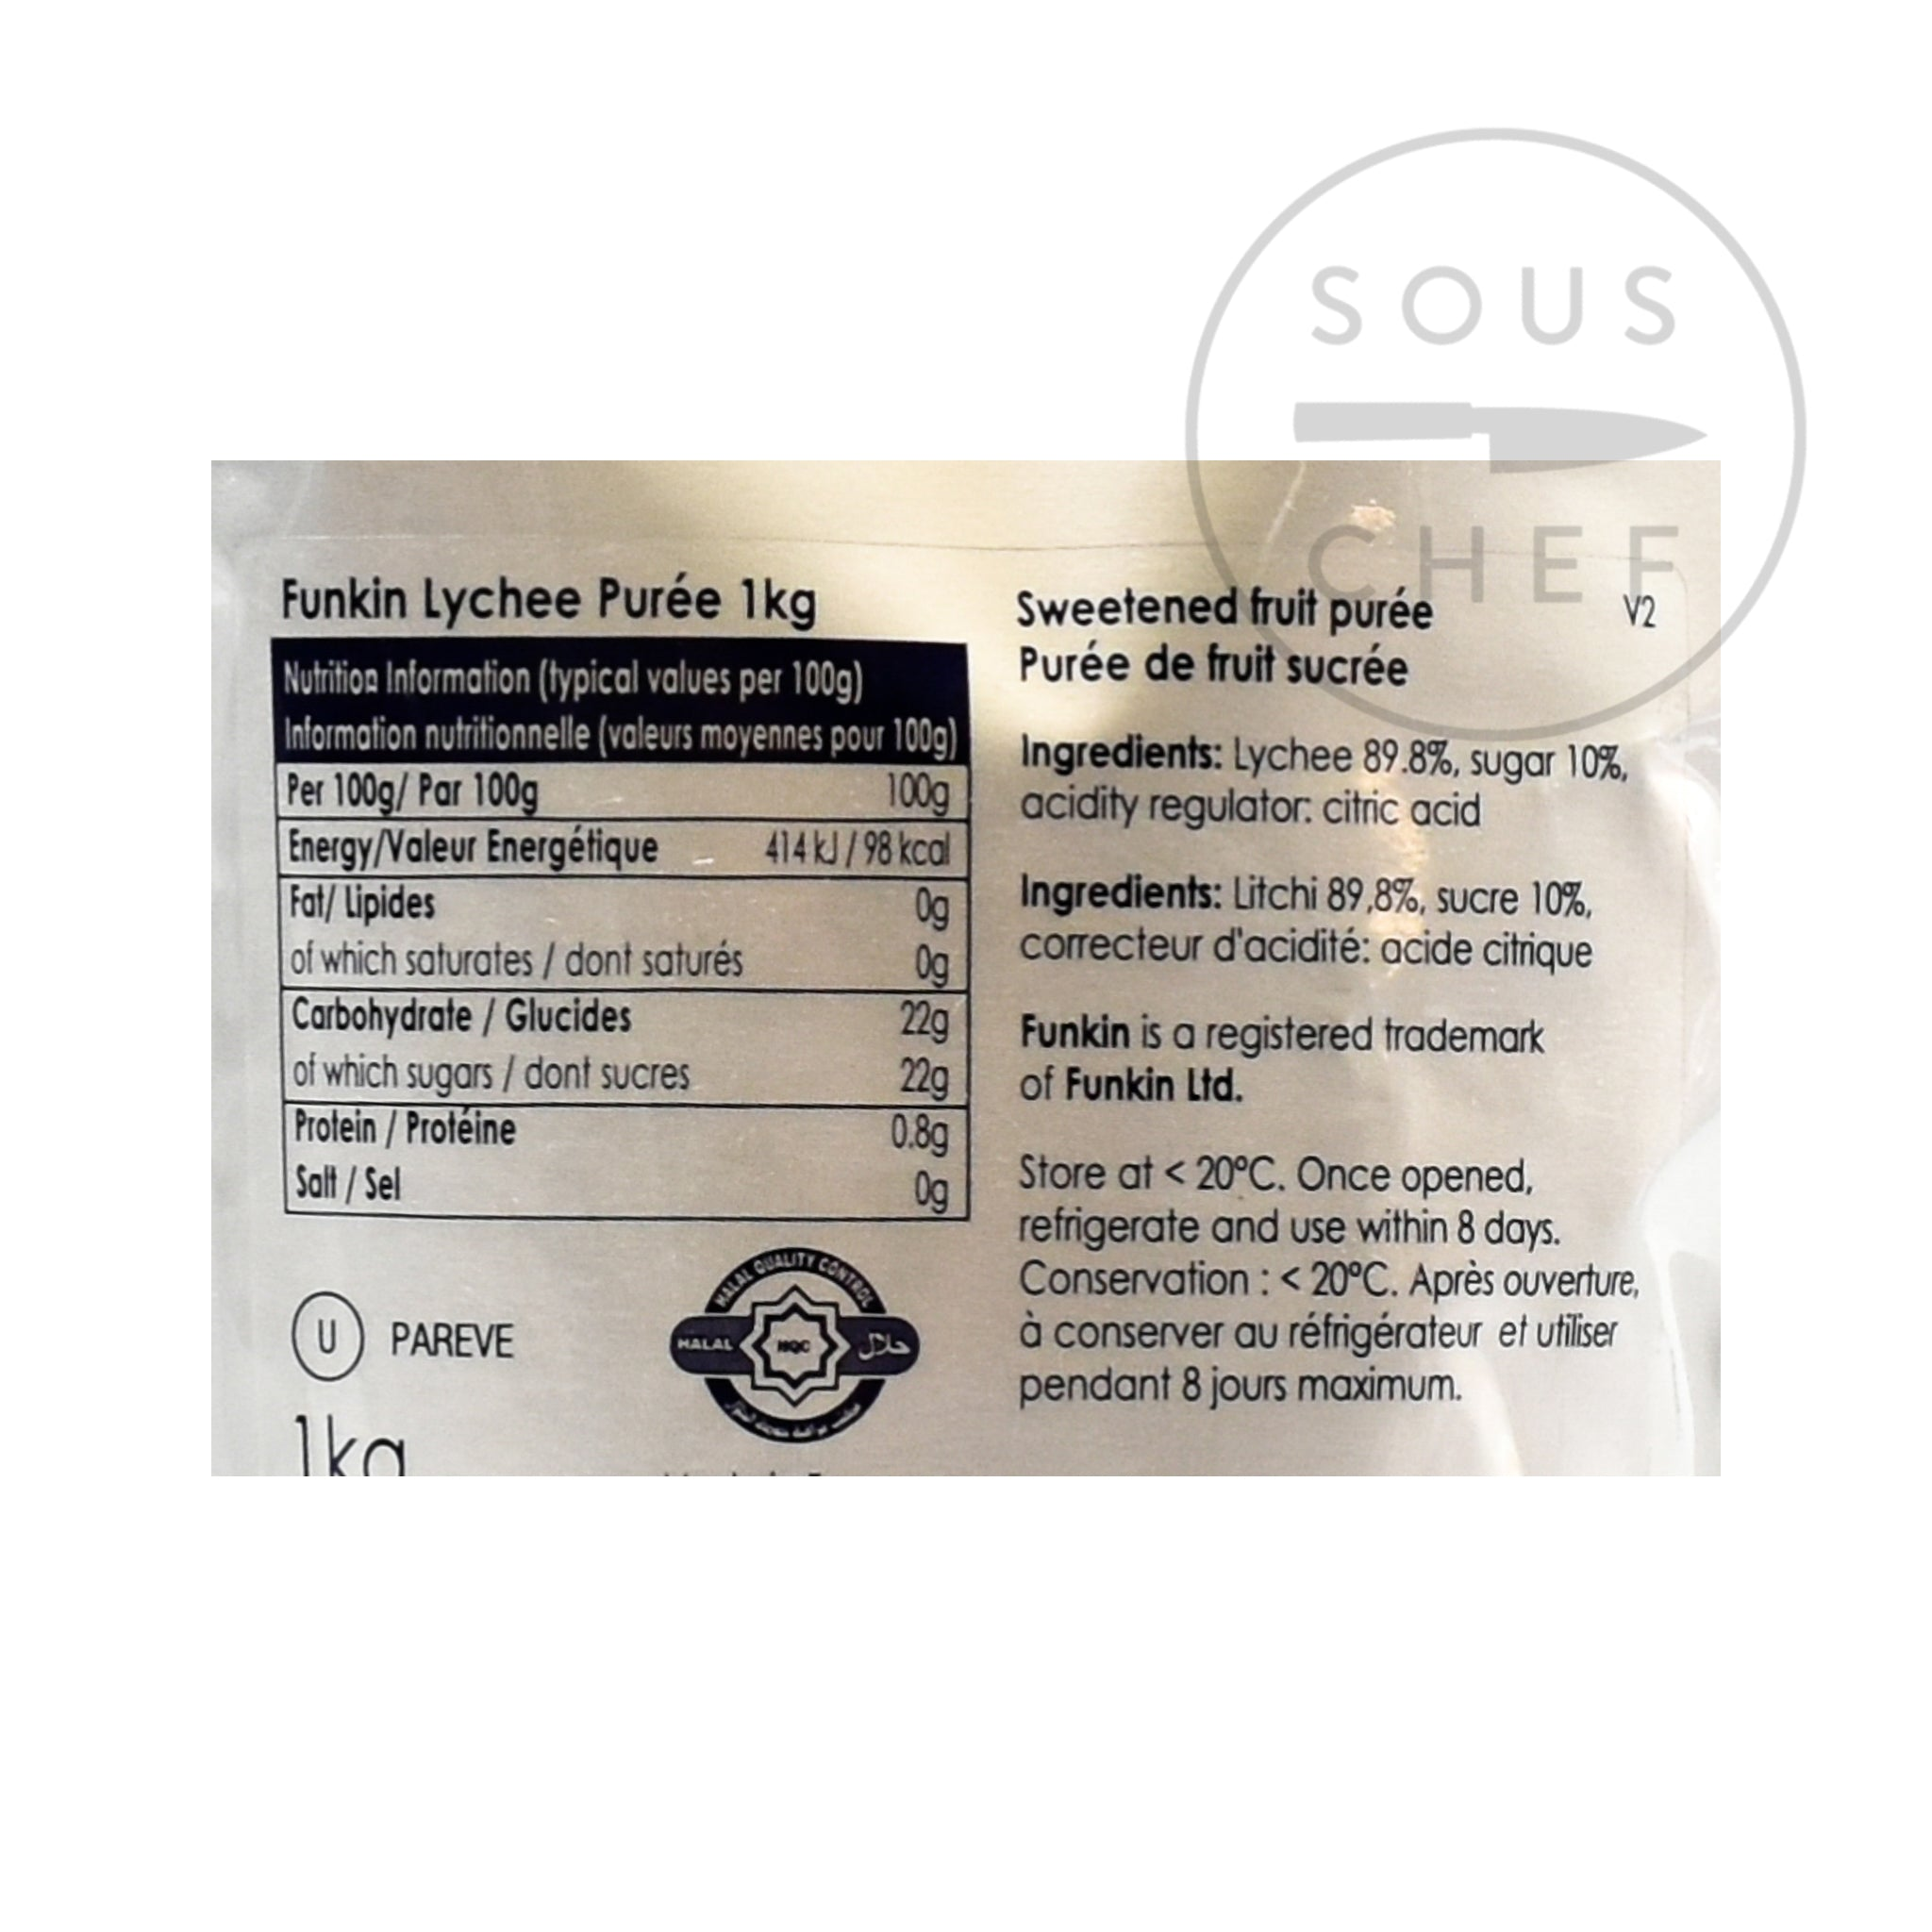 Funkin Lychee Puree 1kg nutritional information ingredients